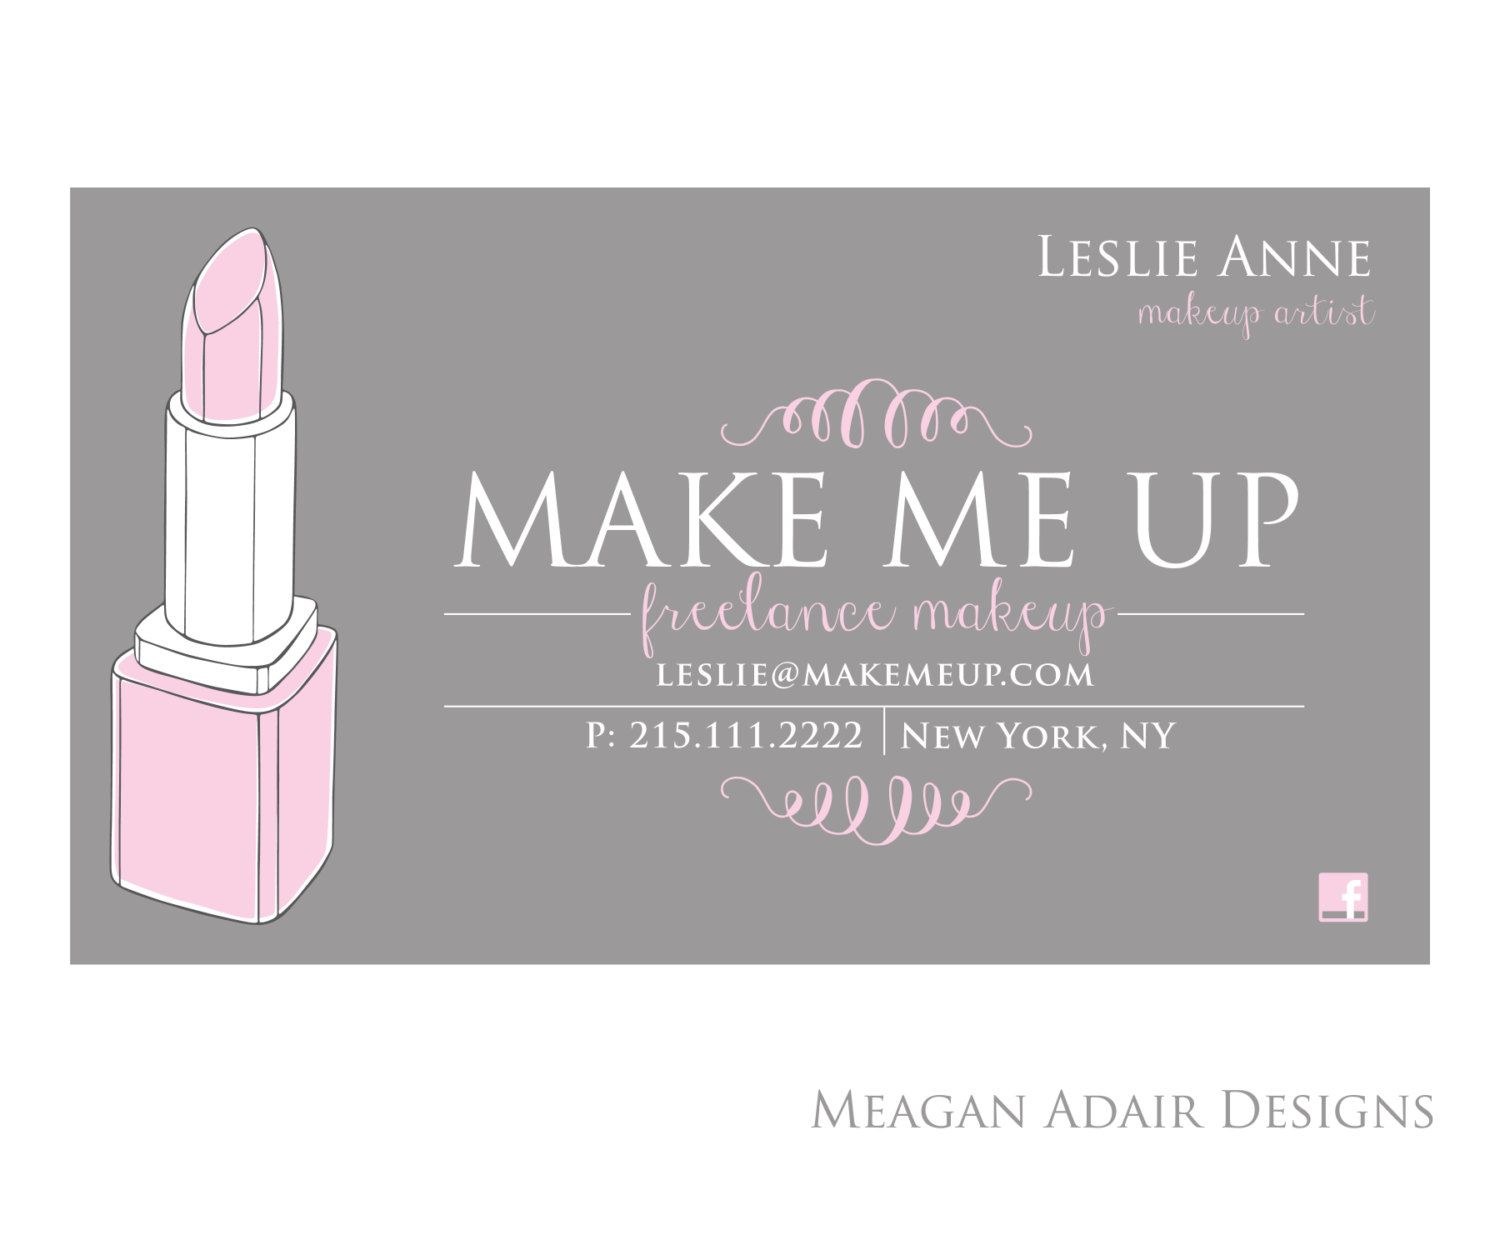 Makeup artist business cards google search makeup artist makeup artist business cards google search reheart Gallery